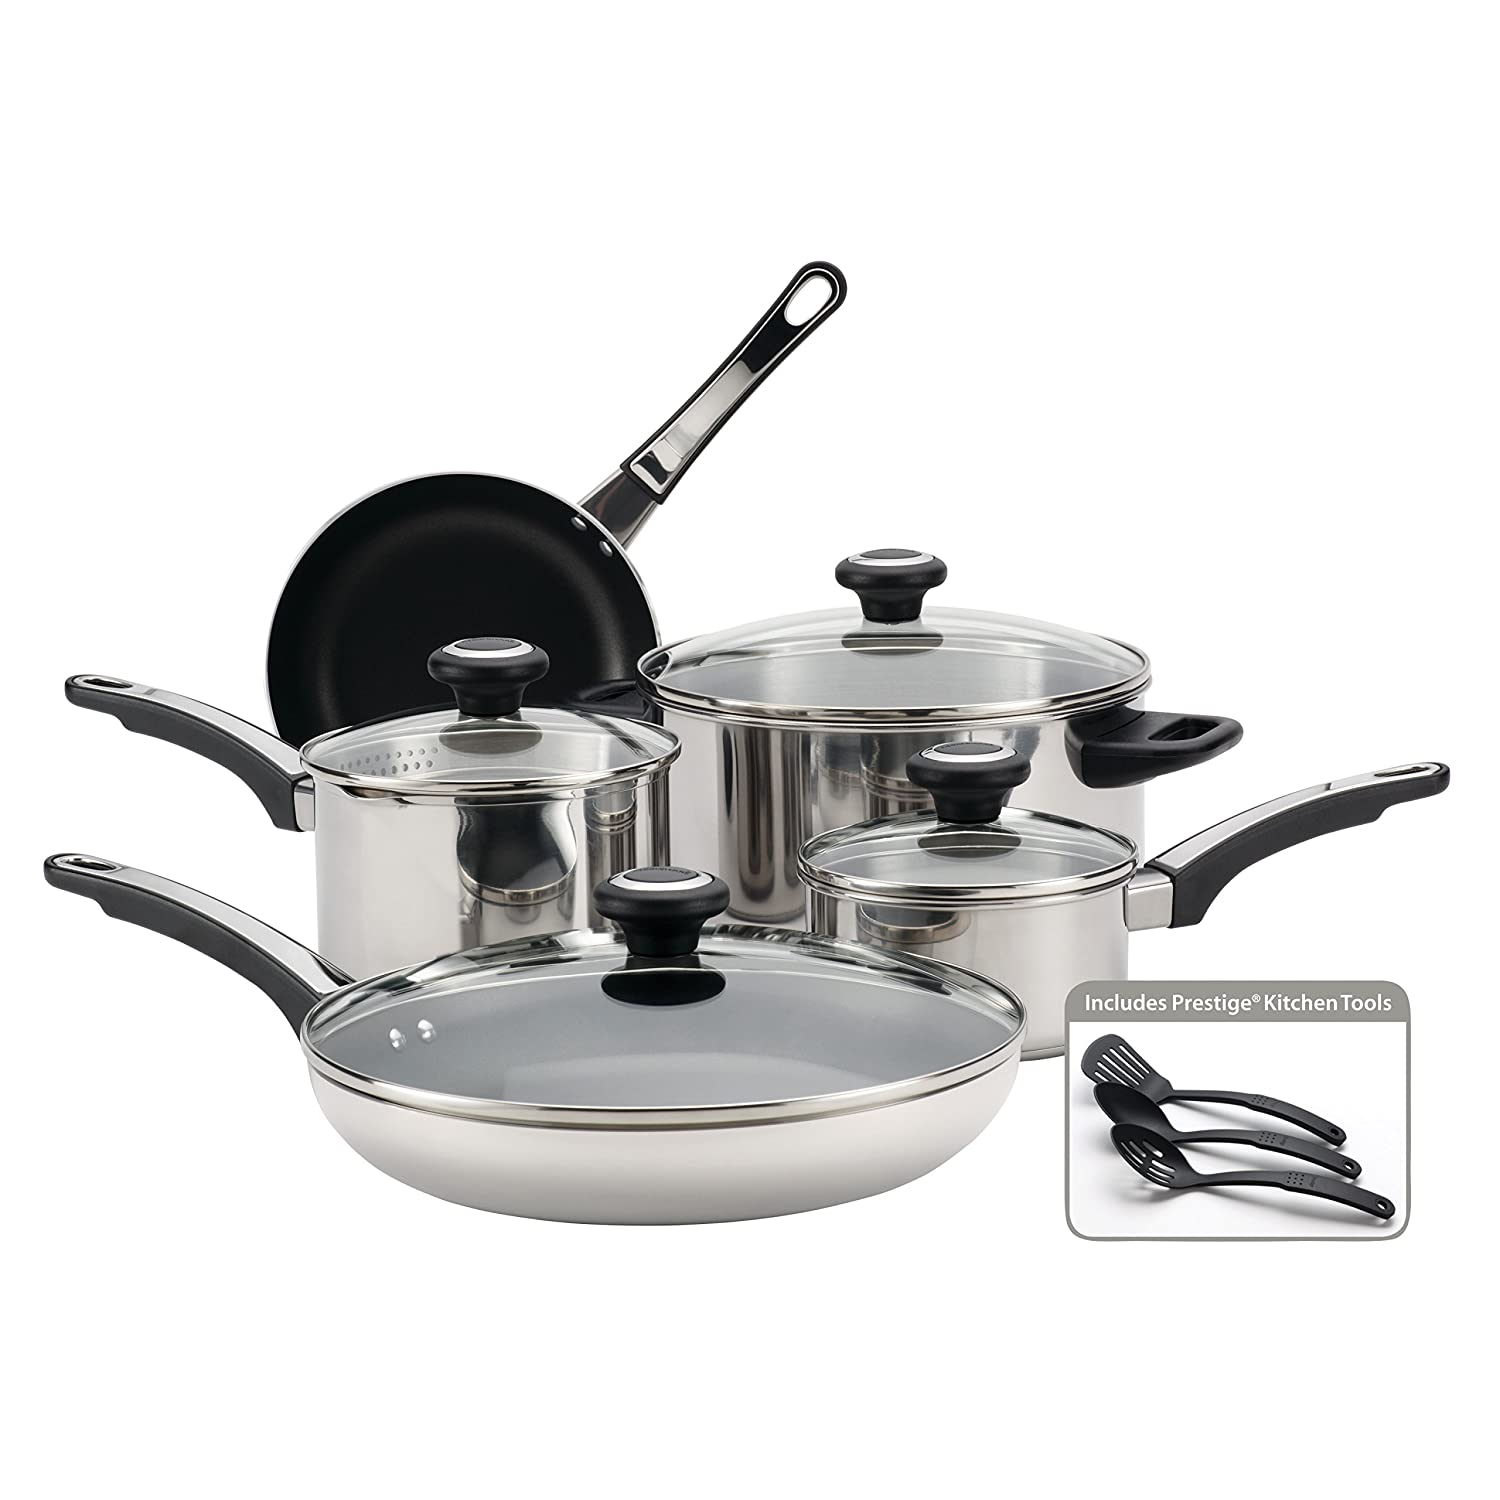 Farberware 77299 High Performance Stainless Steel Cookware Set, 12 Piece, Silver